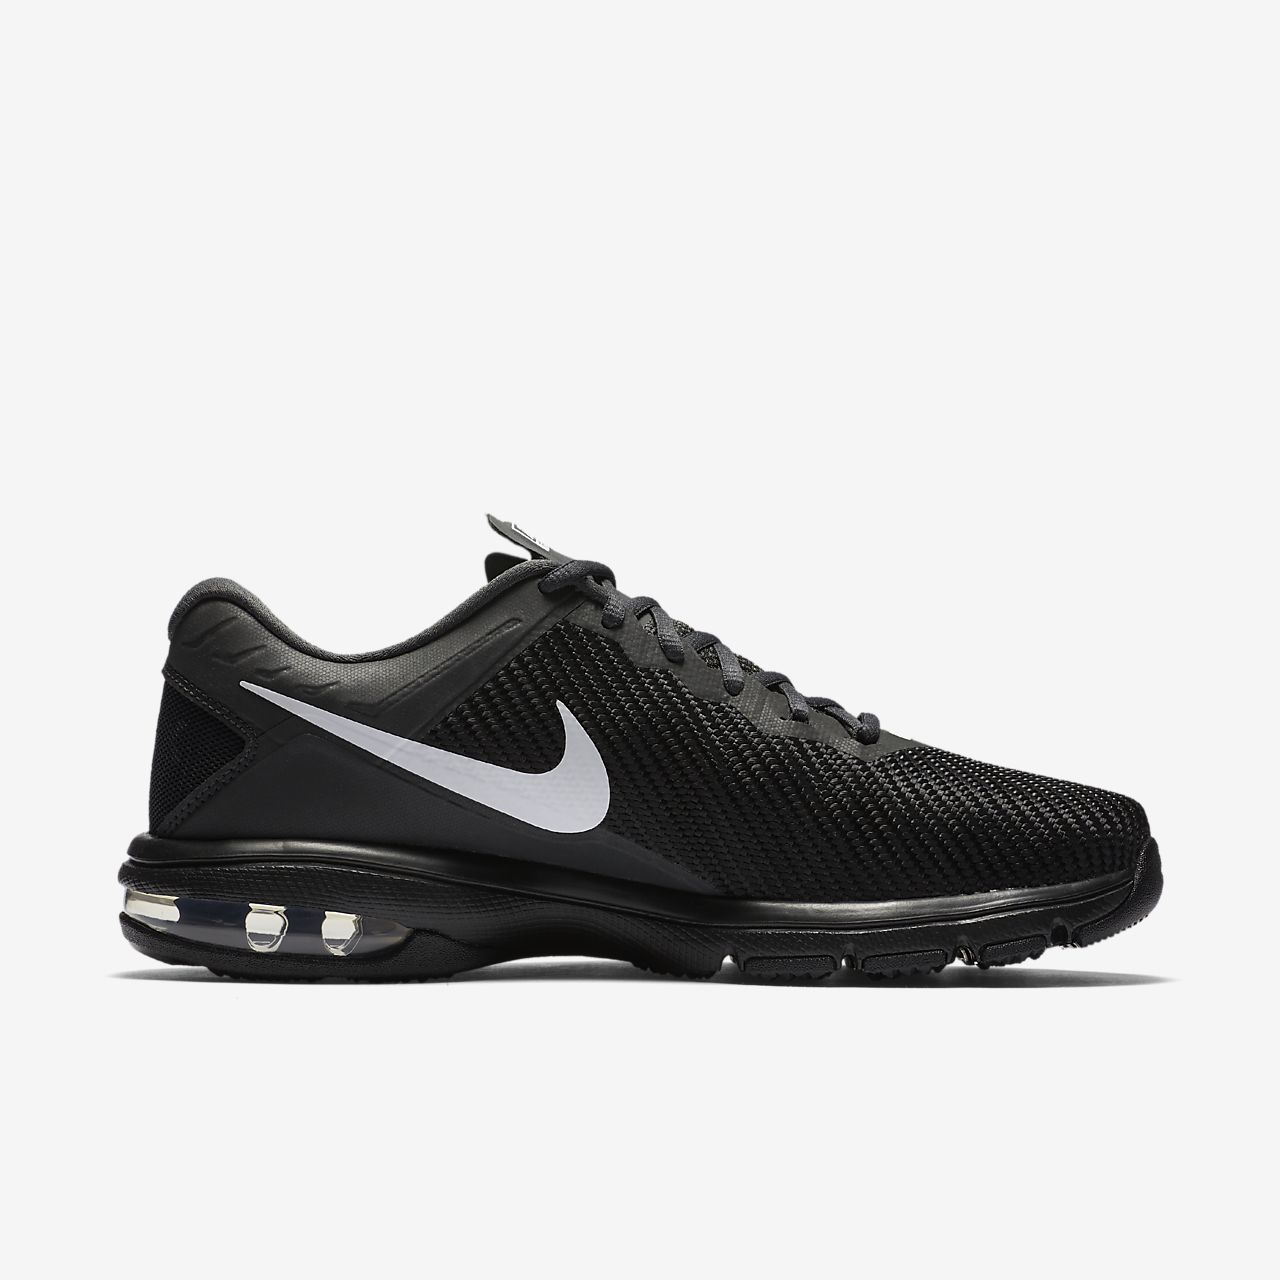 official photos 31003 d3d47 ... Nike Air Max Full Ride TR 1.5 Men s Training Shoe